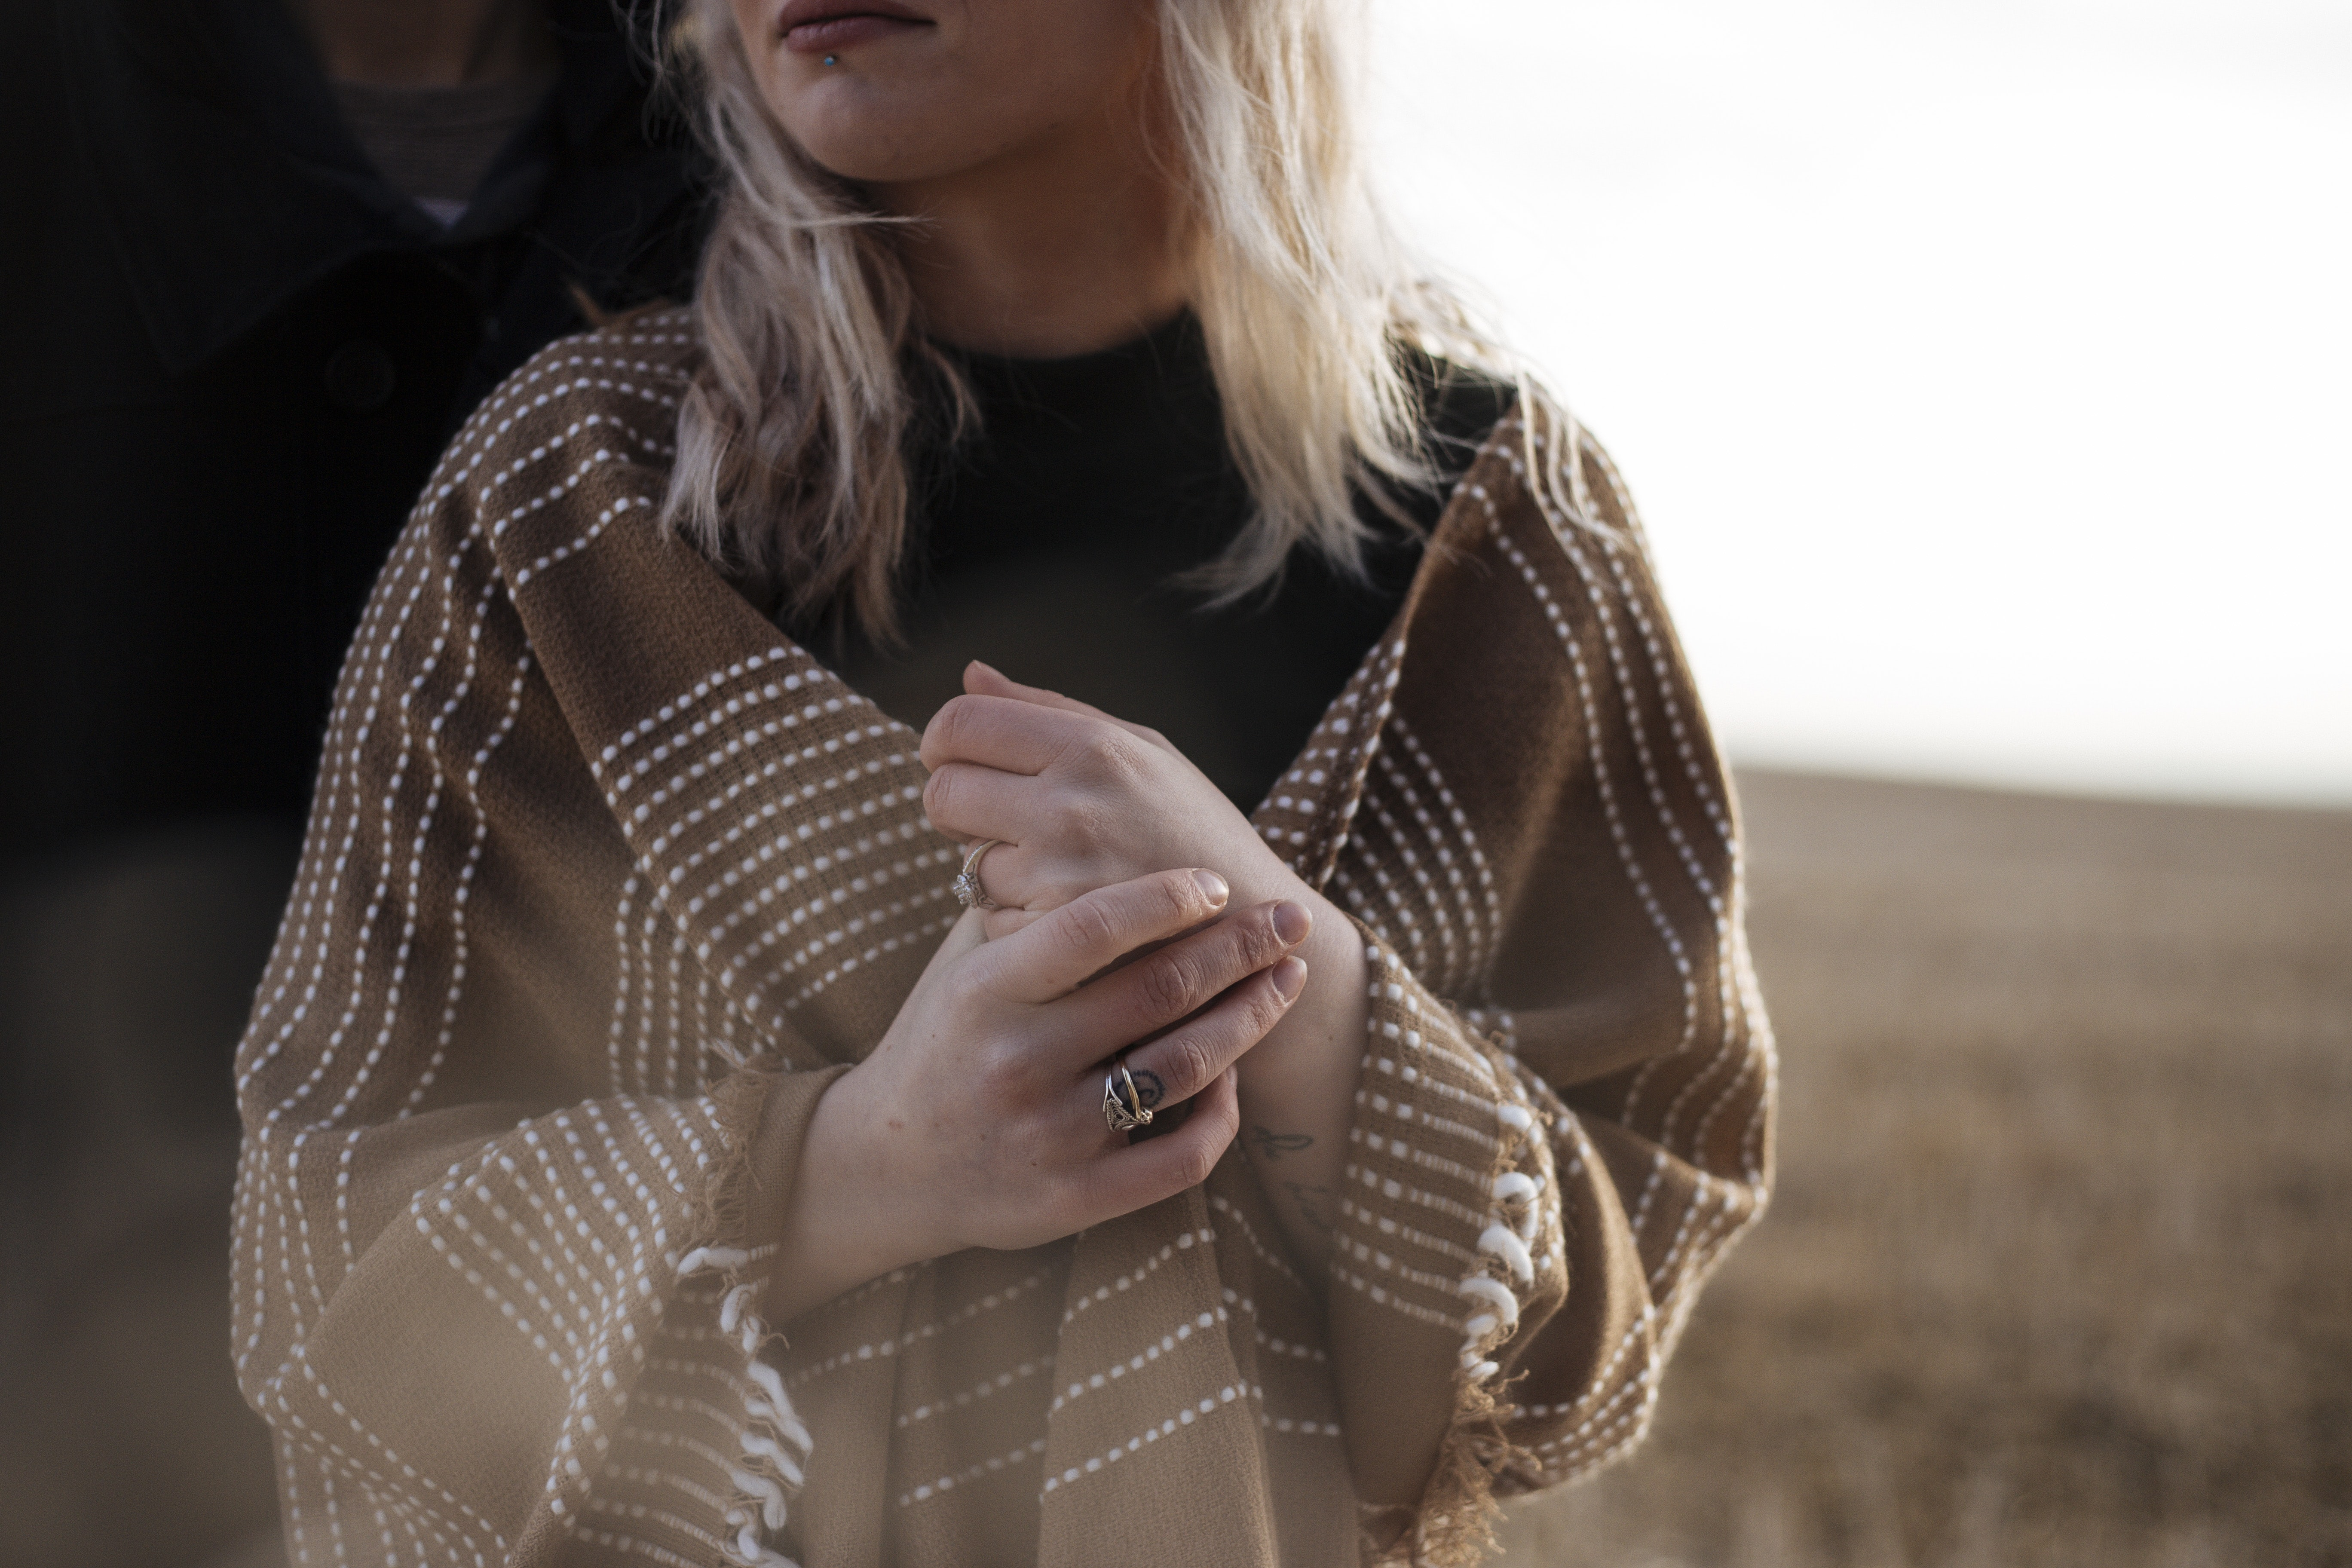 Torso of a woman wearing trendy rings and a brown shawl